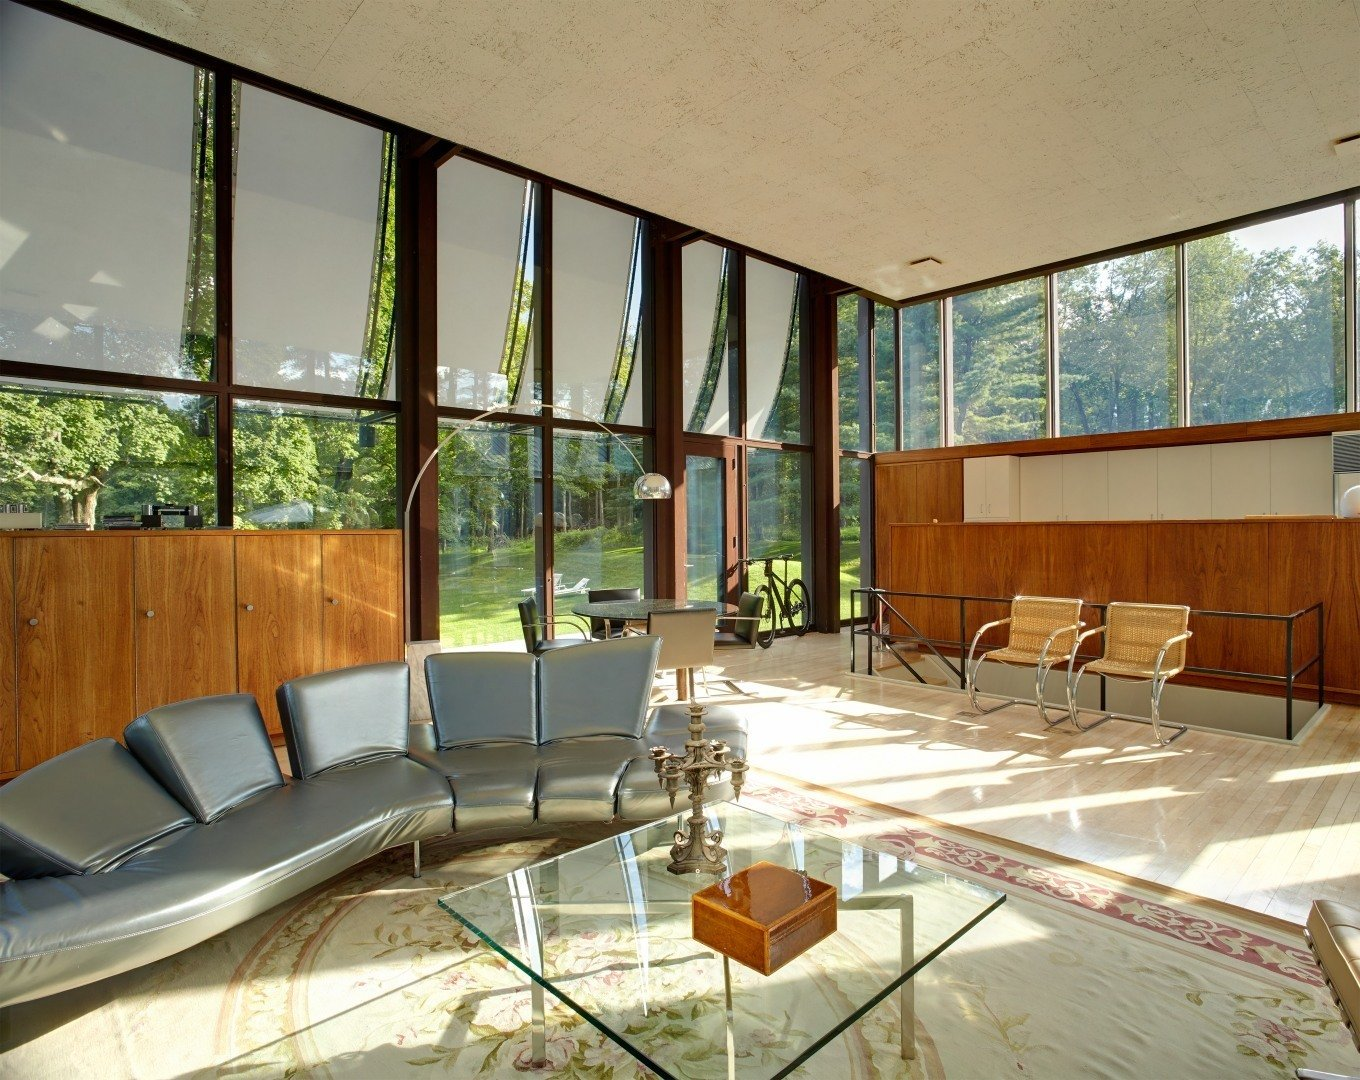 Since the large windows had gone through some harsh wear and tear over the years, Ferris decided to replace the old window panels with new double-paned windows while following Johnson's original drawings. Ferris personally knew Johnson and made sure to stick to his original vision when restoring the house.  Photo 7 of 10 in After a Year on the Market, Philip Johnson's Wiley House Drops by $2 Million